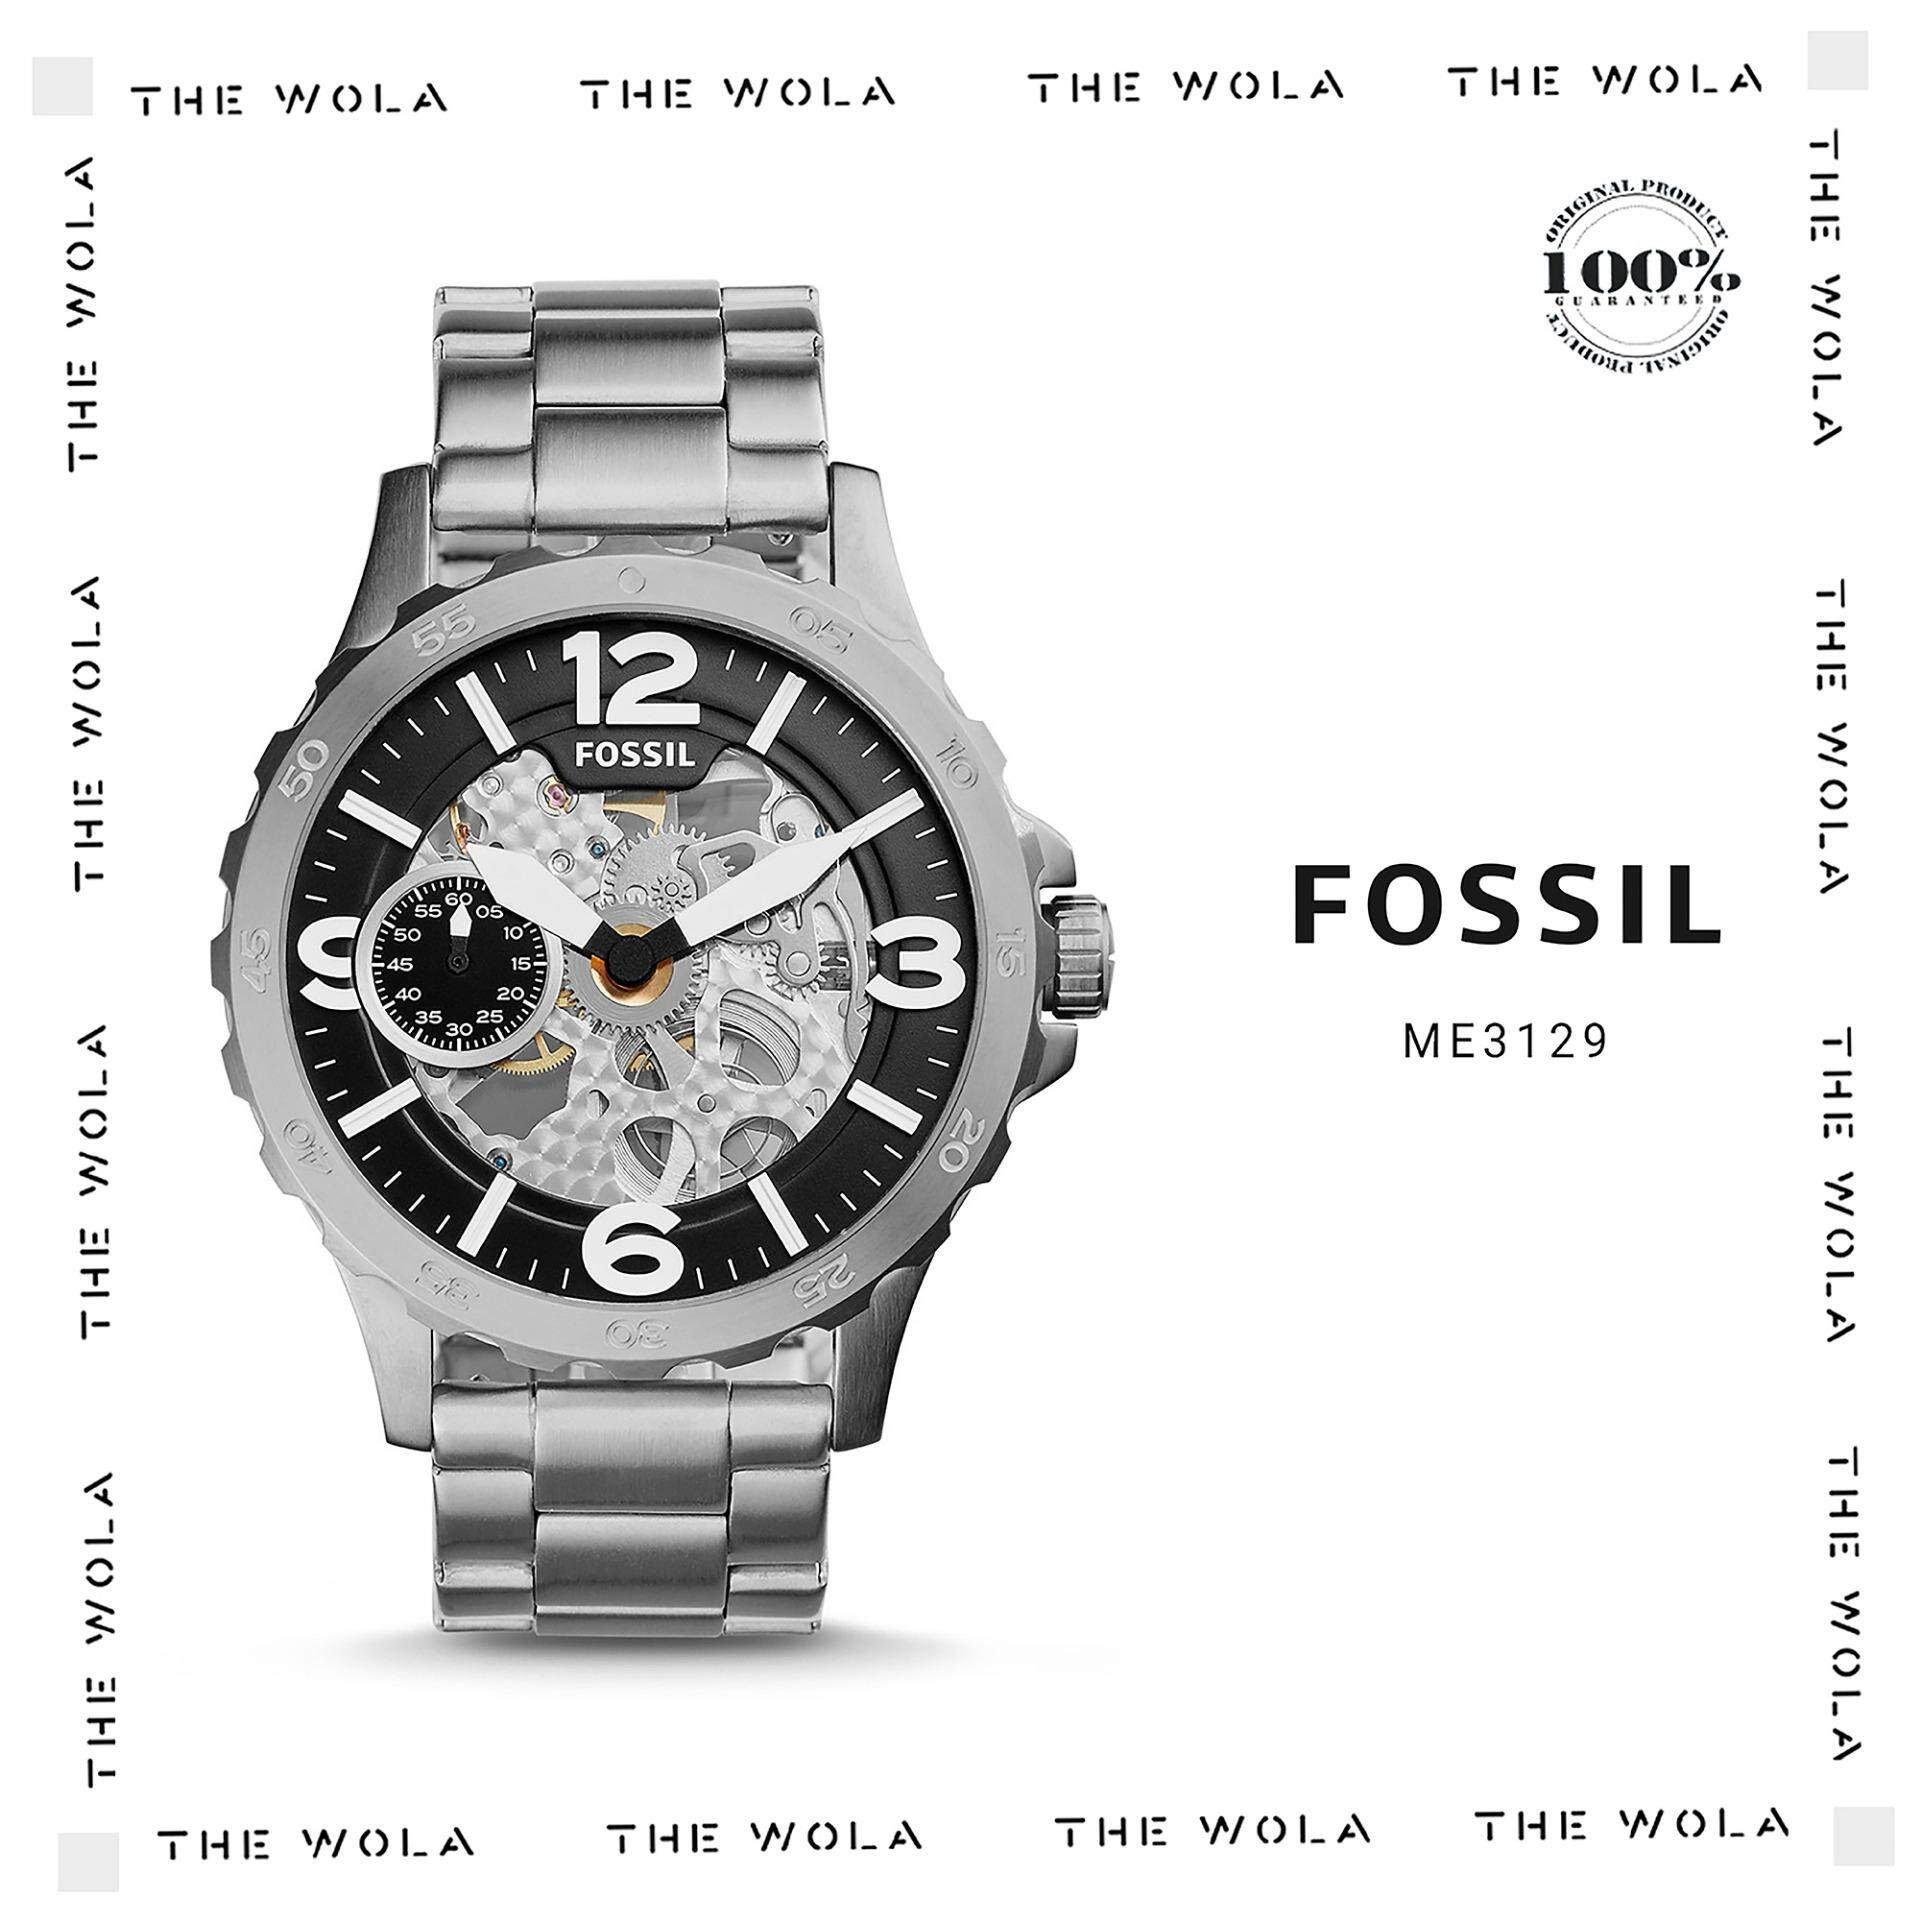 Fossil Watches Price In Malaysia Best Lazada Es3815 Jam Tangan Wanita Original Automatic Men Watch Me3129 Genuine 2 Years Warranty